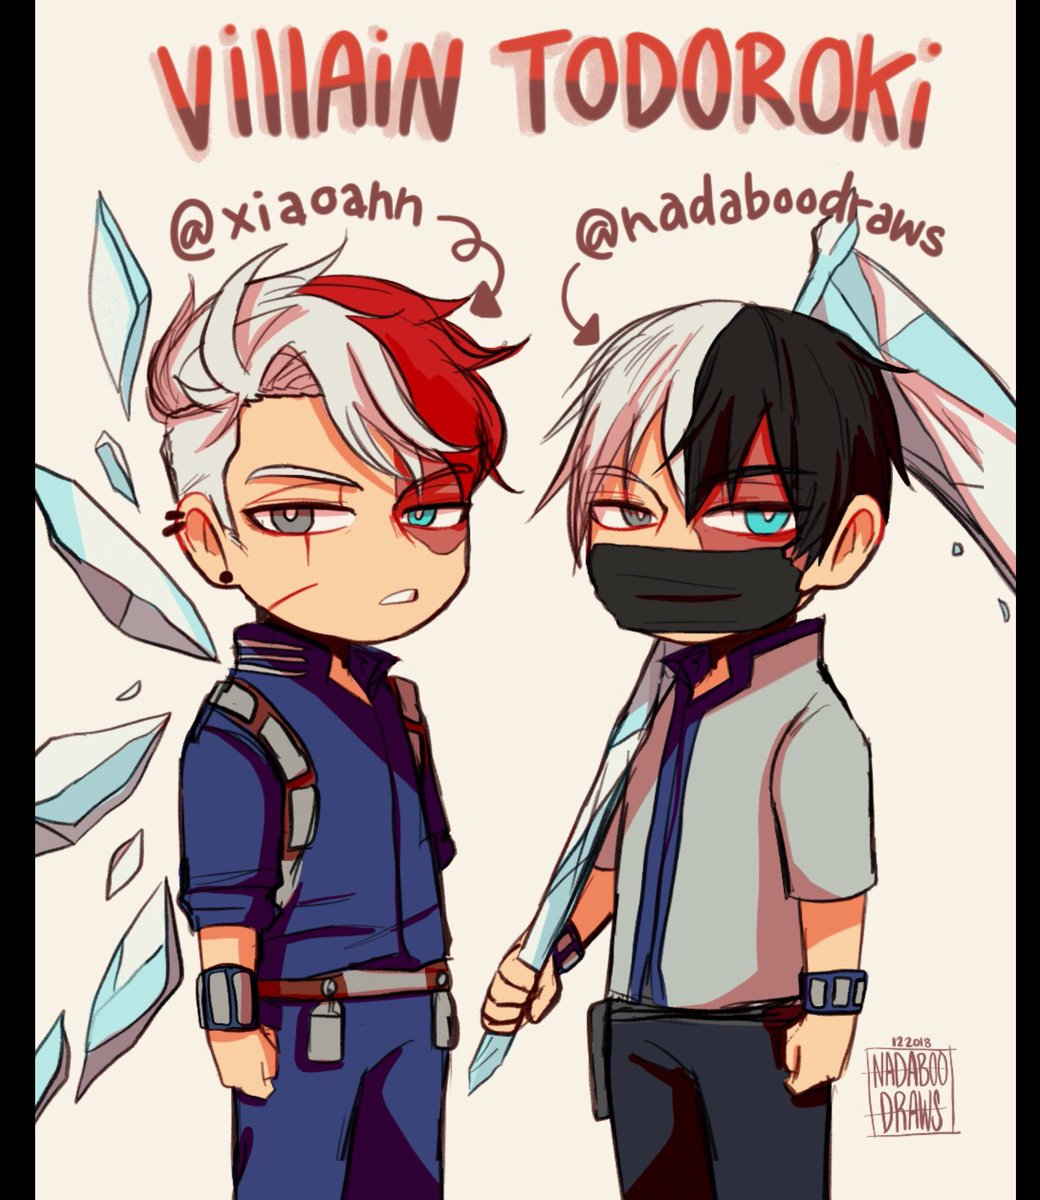 Nadaboodraws On Twitter Villain Todoroki Of My Version And